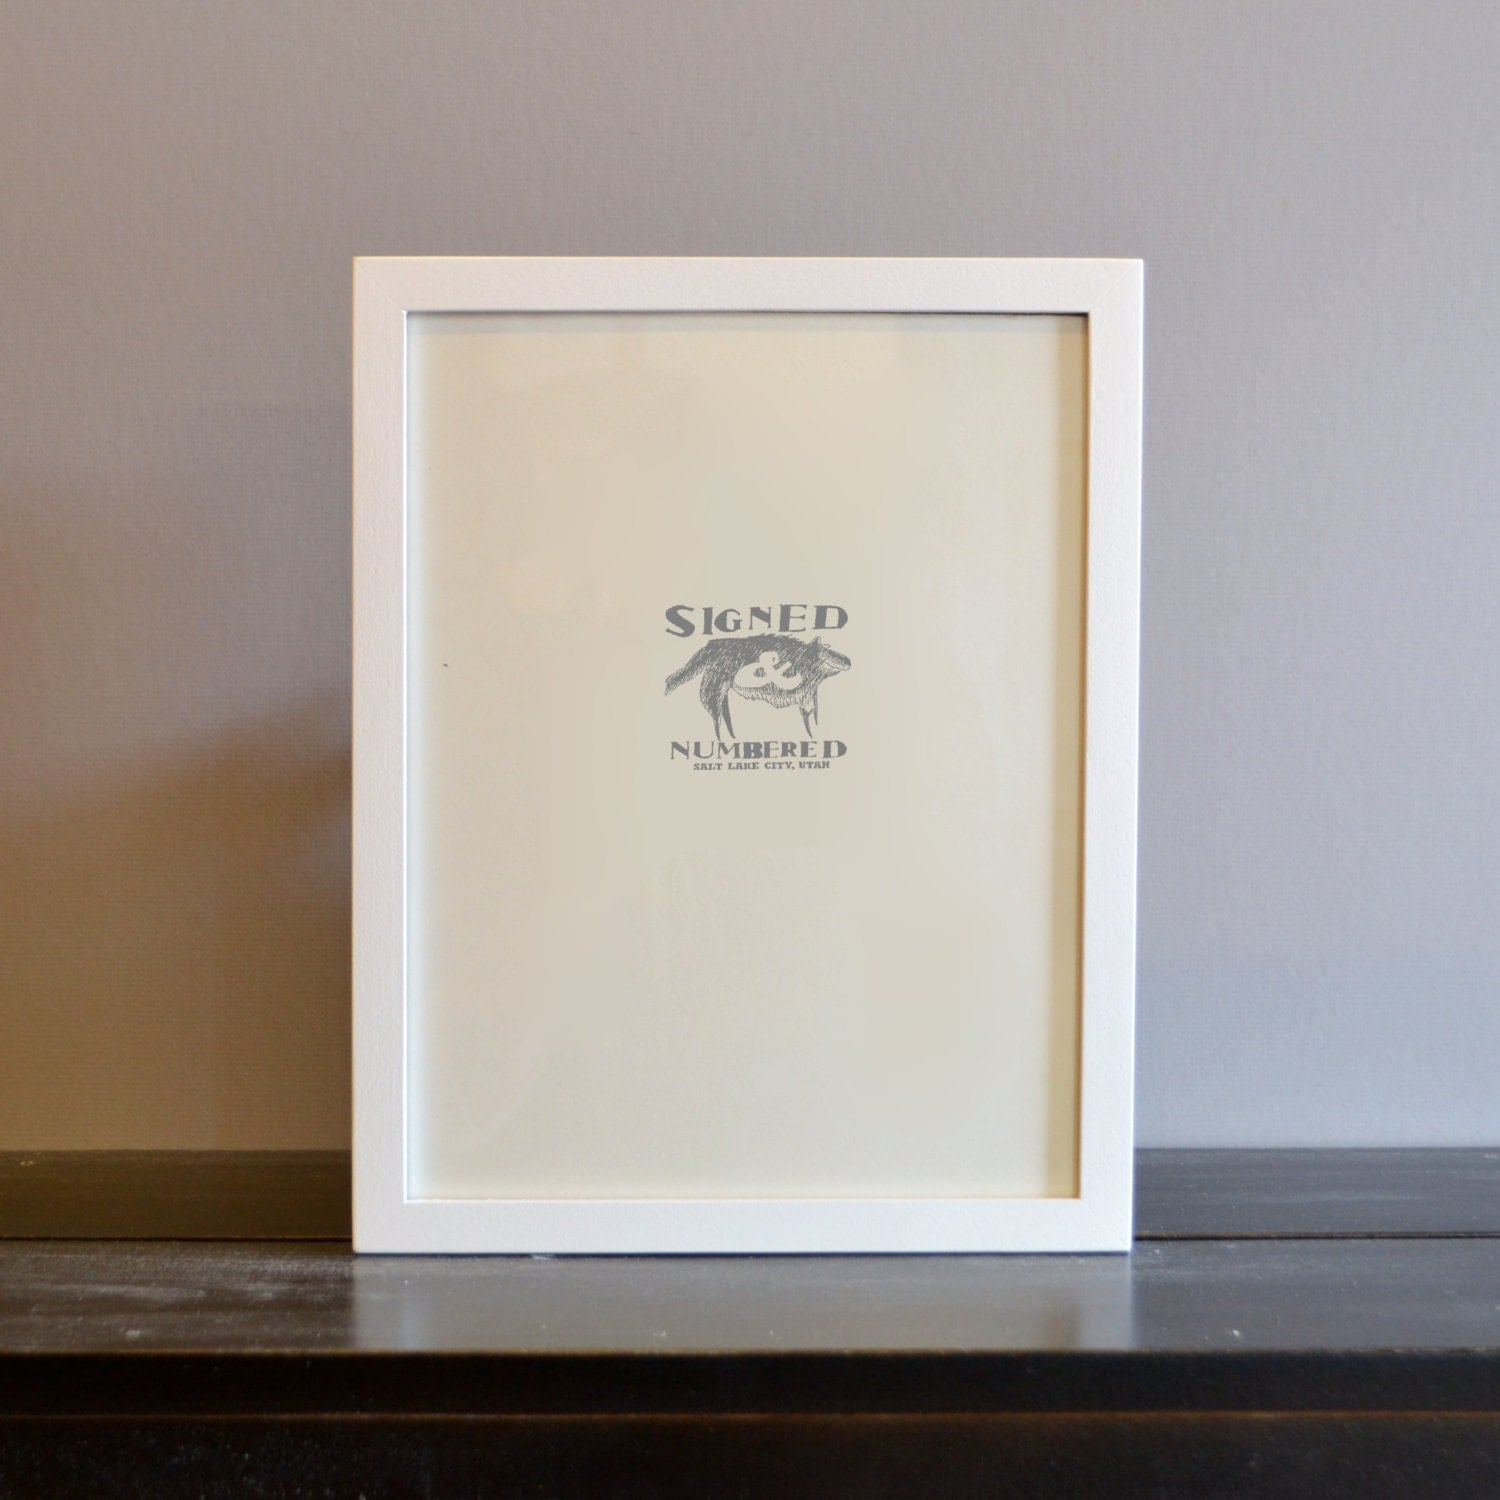 85 x 11 picture frame in peewee style with solid white finish handmade modern white document frame 85x11 gallery frame